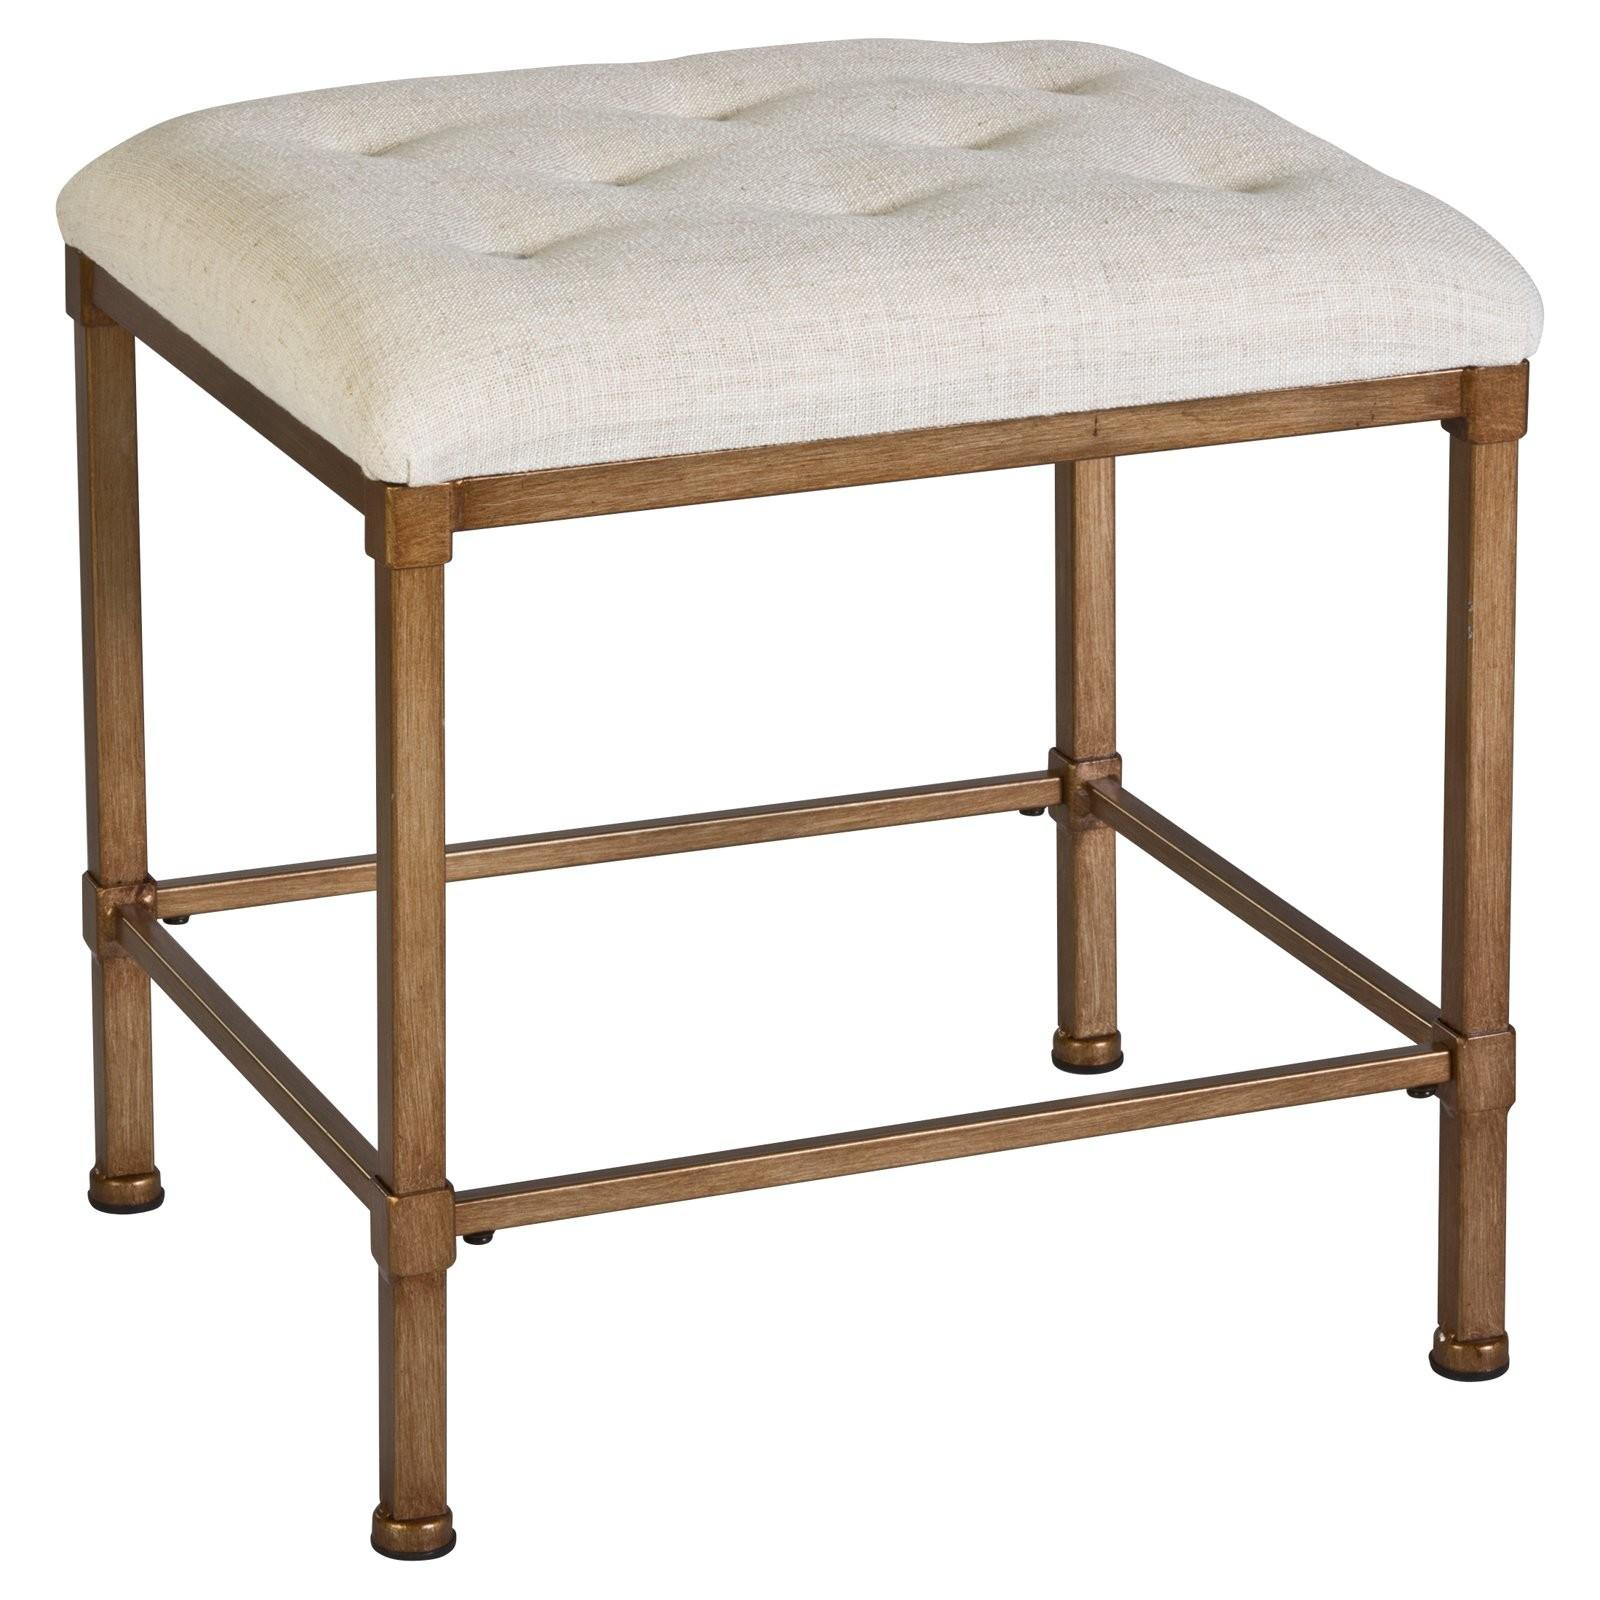 Square Upholstered Tufted Backless Bathroom Vanity Chair